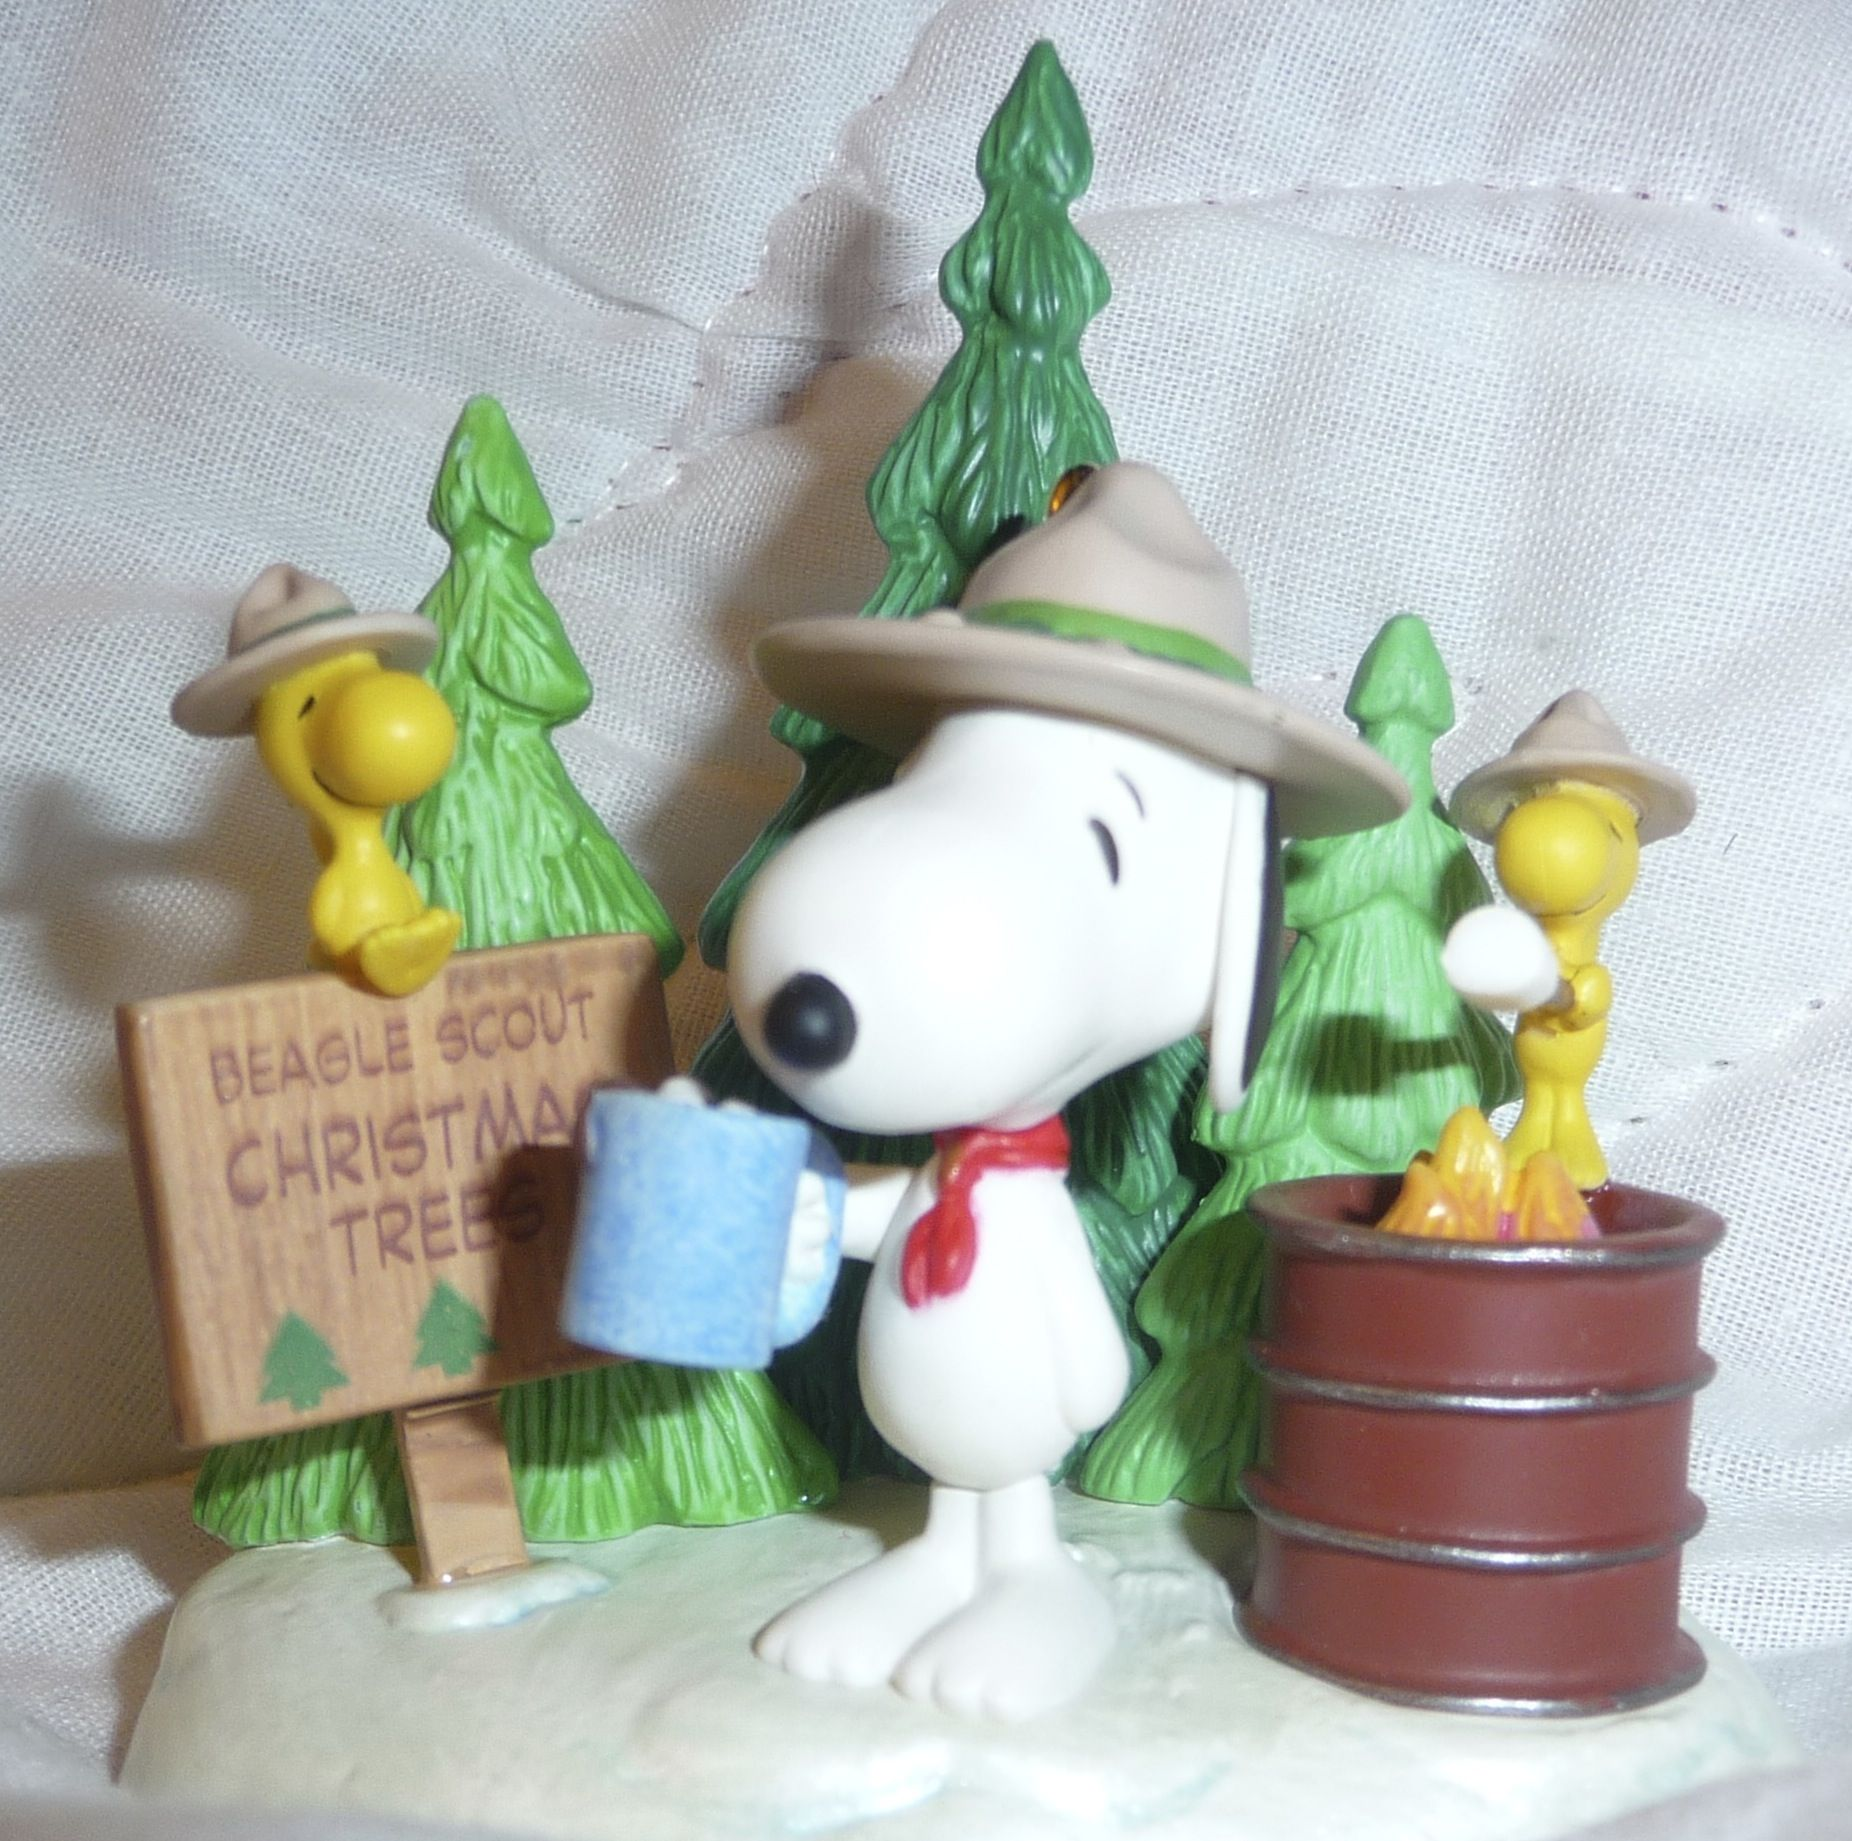 Snoopy Beagle Scout Christmas Tree Lot Ornament Snoopy Beagle Charlie Brown And Snoopy Snoopy